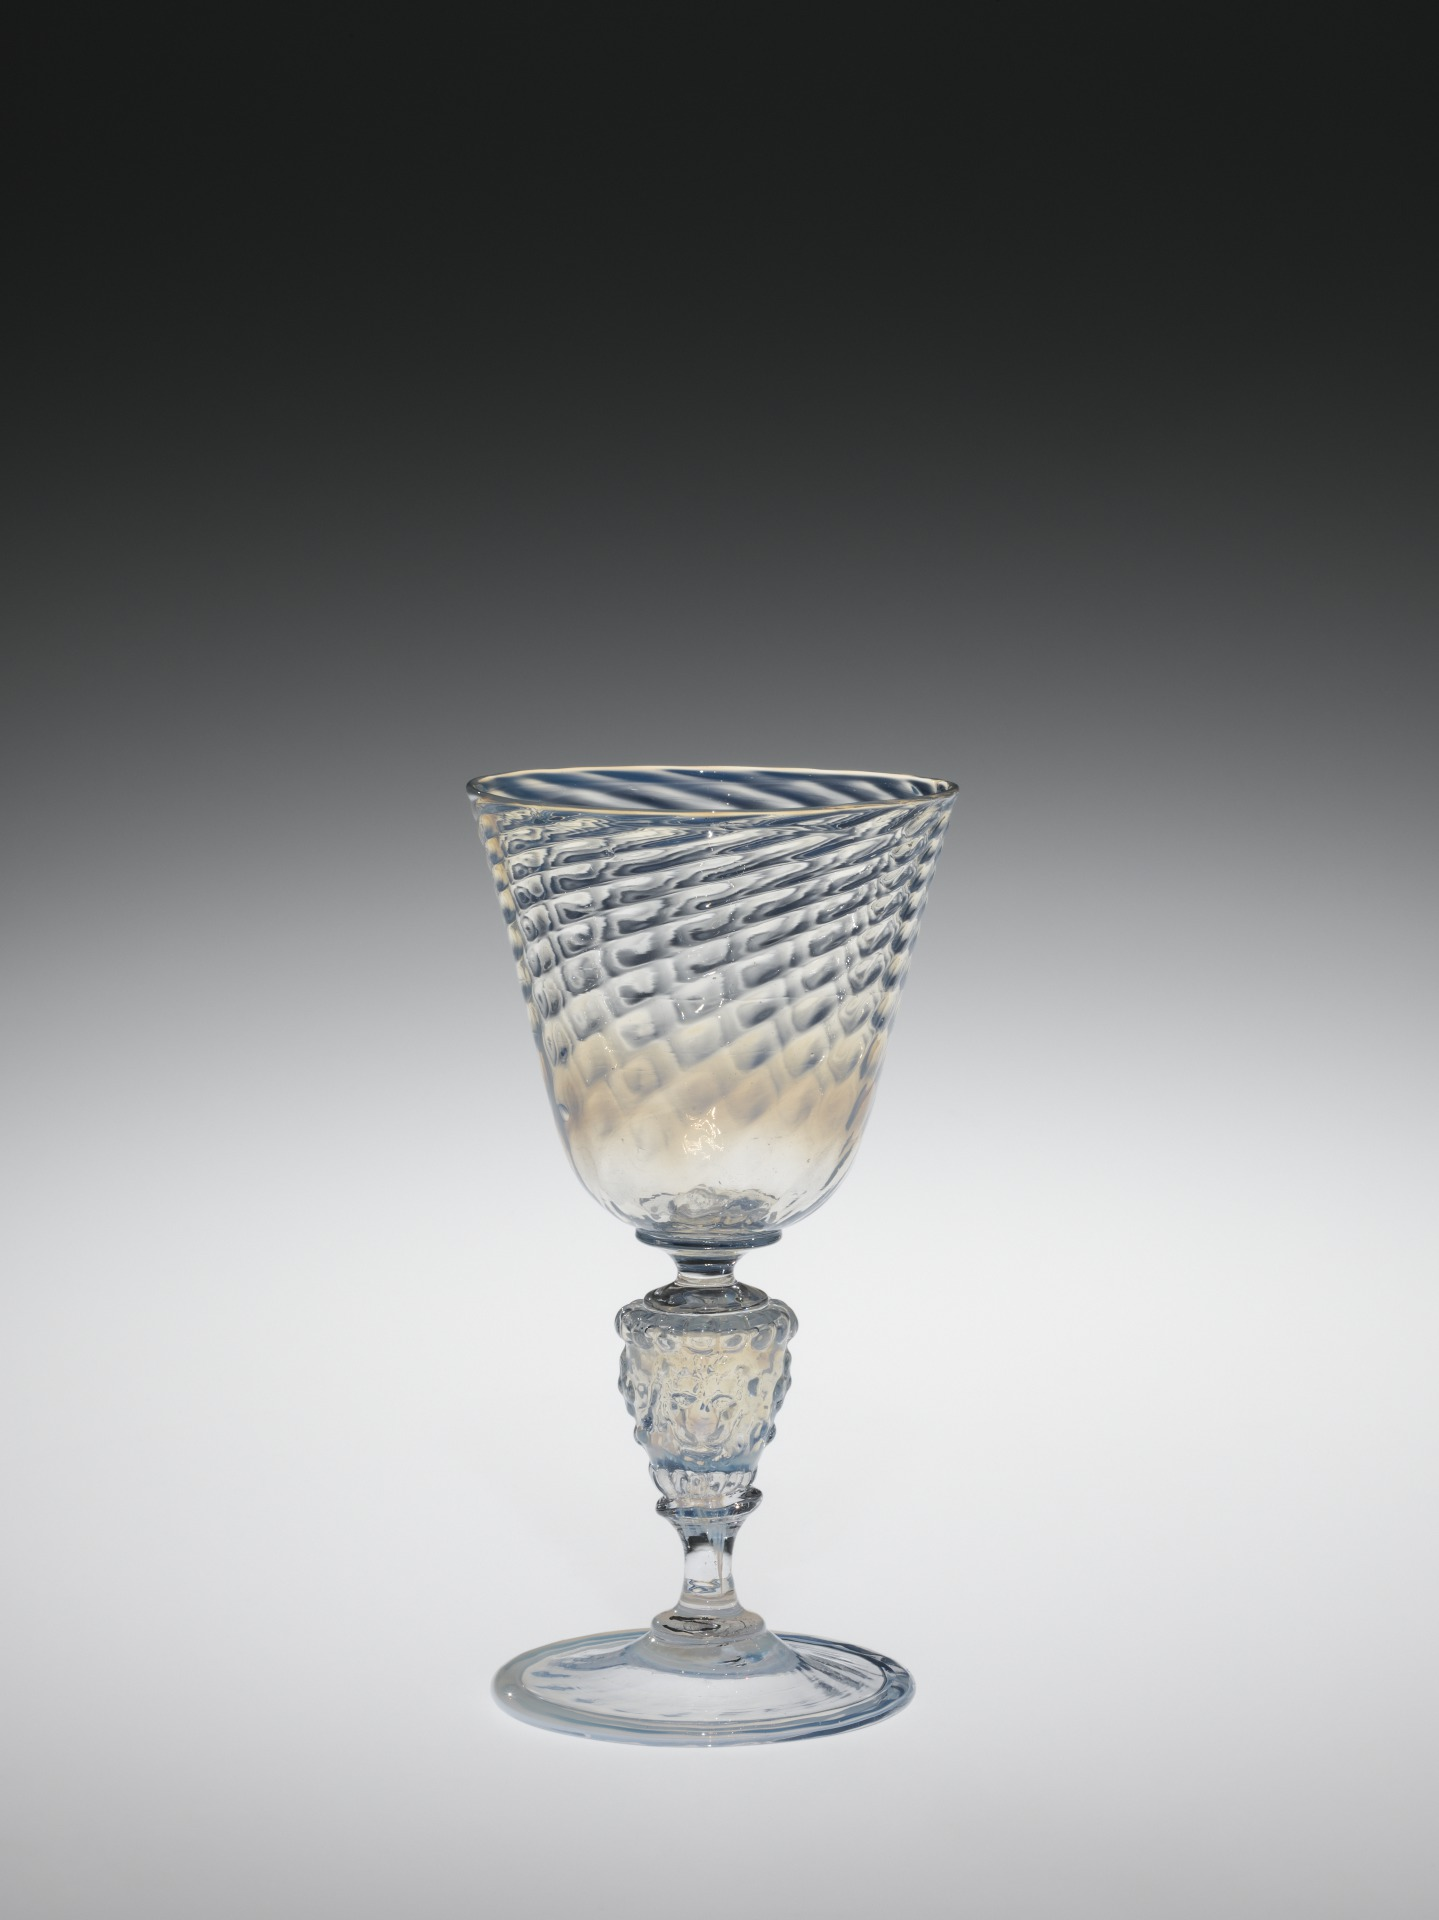 Goblet with conical optic-molded cup and foot joined with a stem consisting of a hollow molded lion mask flanked on top and bottom with waisted elements.